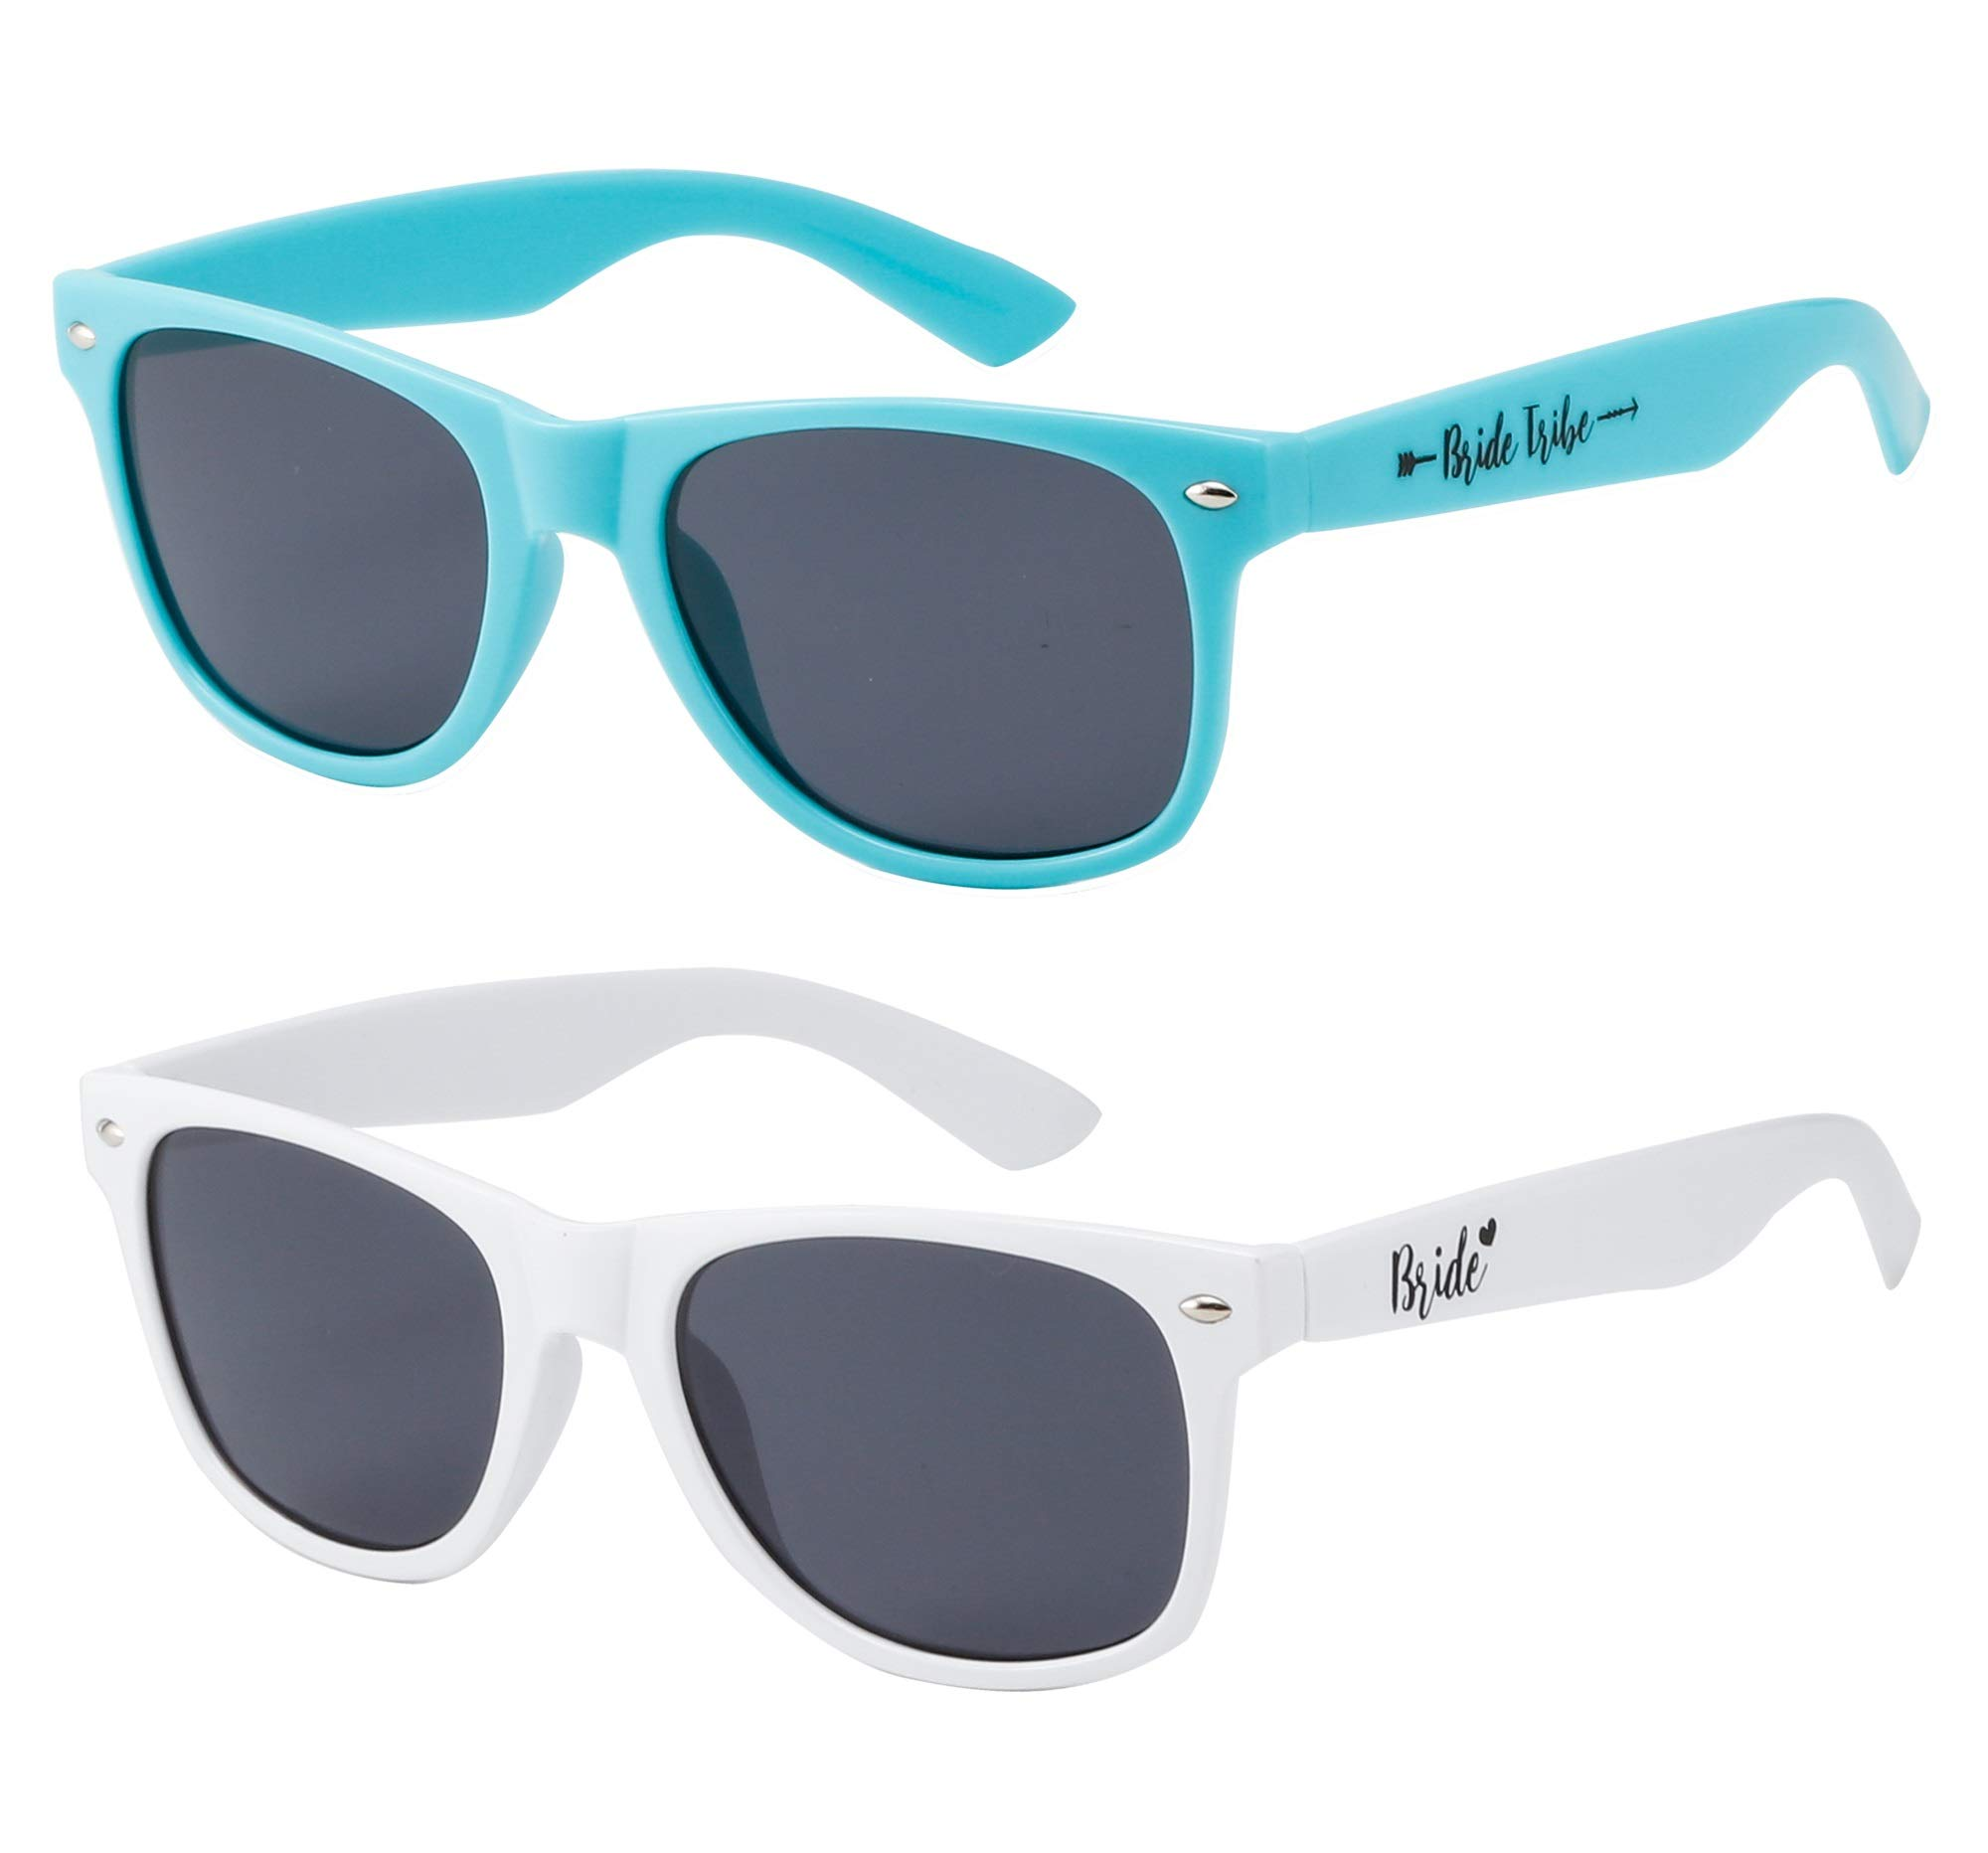 Bridal Shower Favors Bride Tribe and Bride Sunglasses, Perfect for Bachelorette Parties, Weddings, and Showers